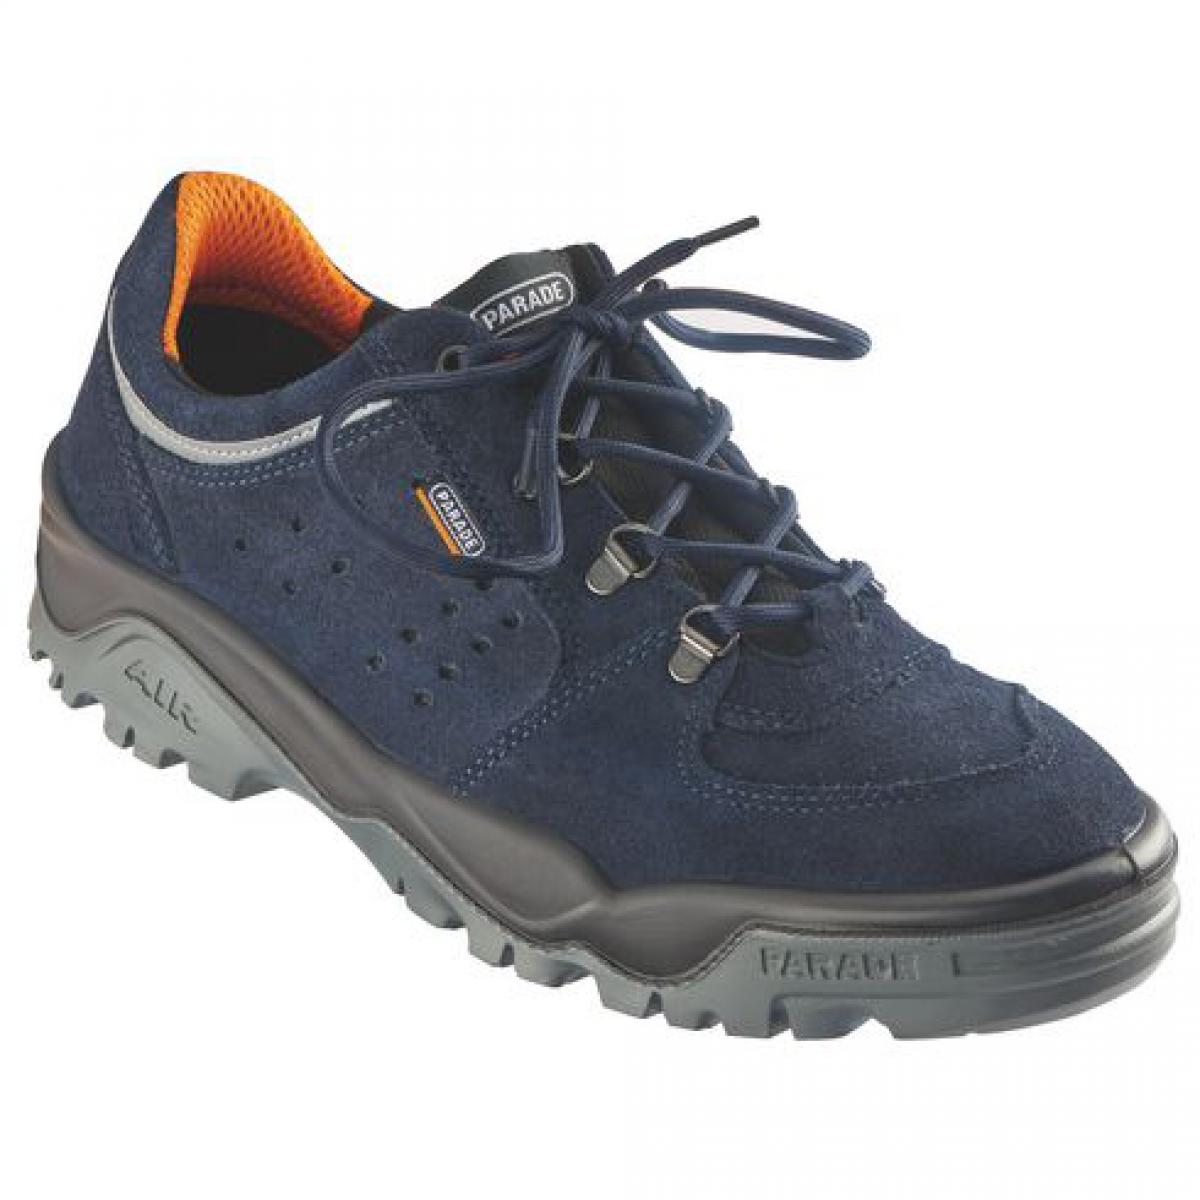 Parade Chaussure Doxo taille 41